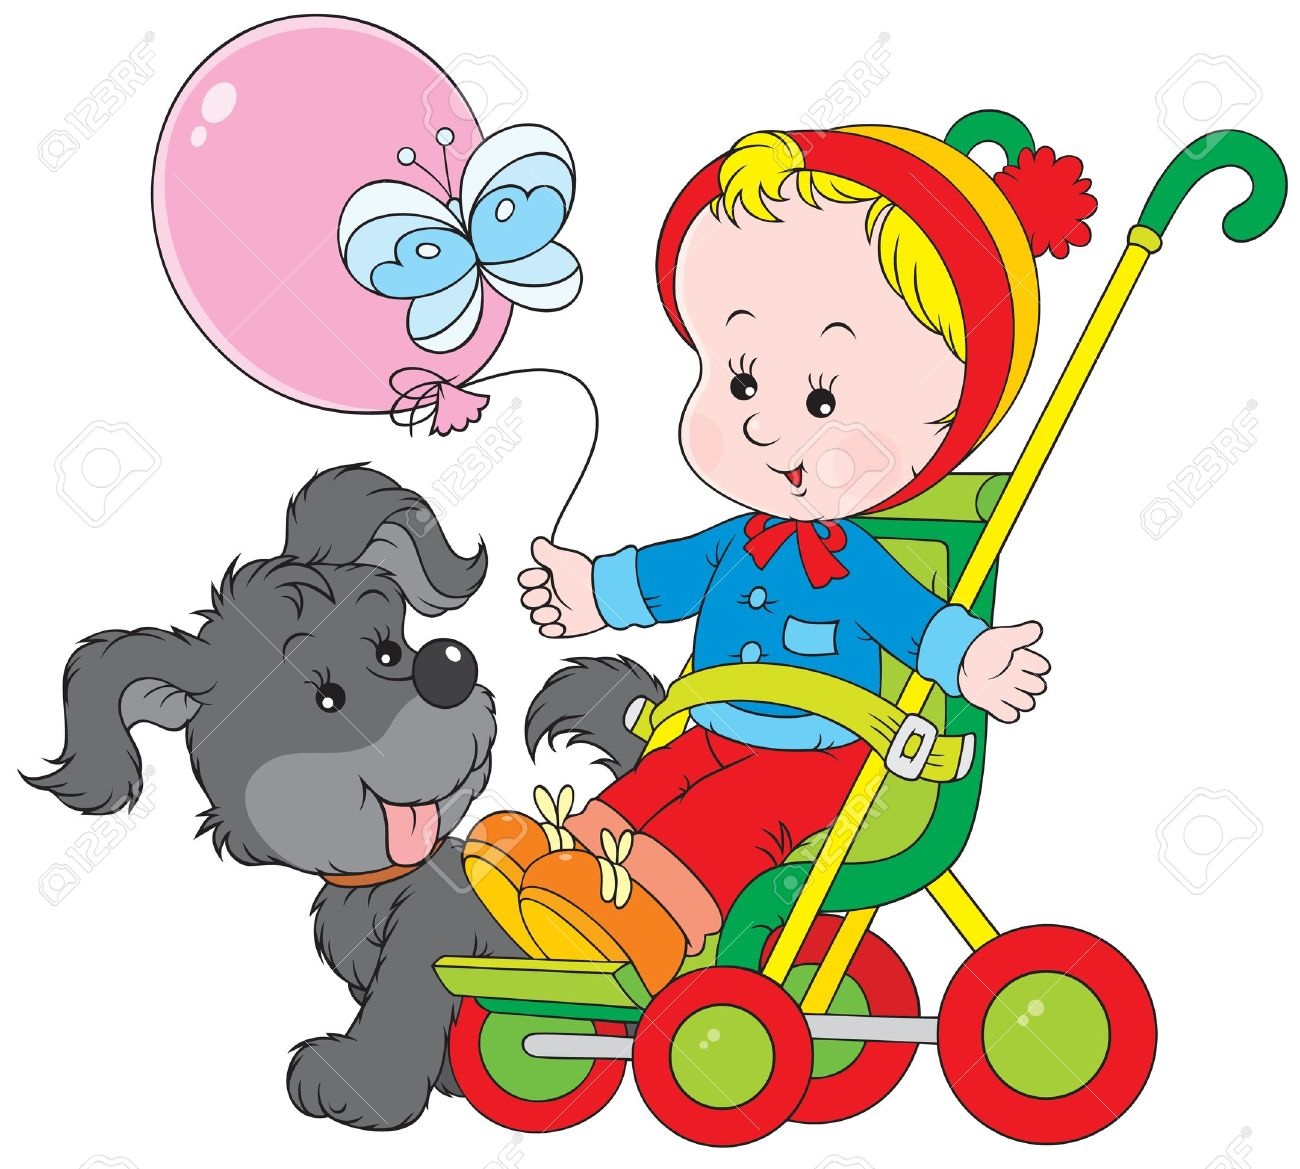 Toddler In A Pram And Funny Pup Royalty Free Cliparts, Vectors.